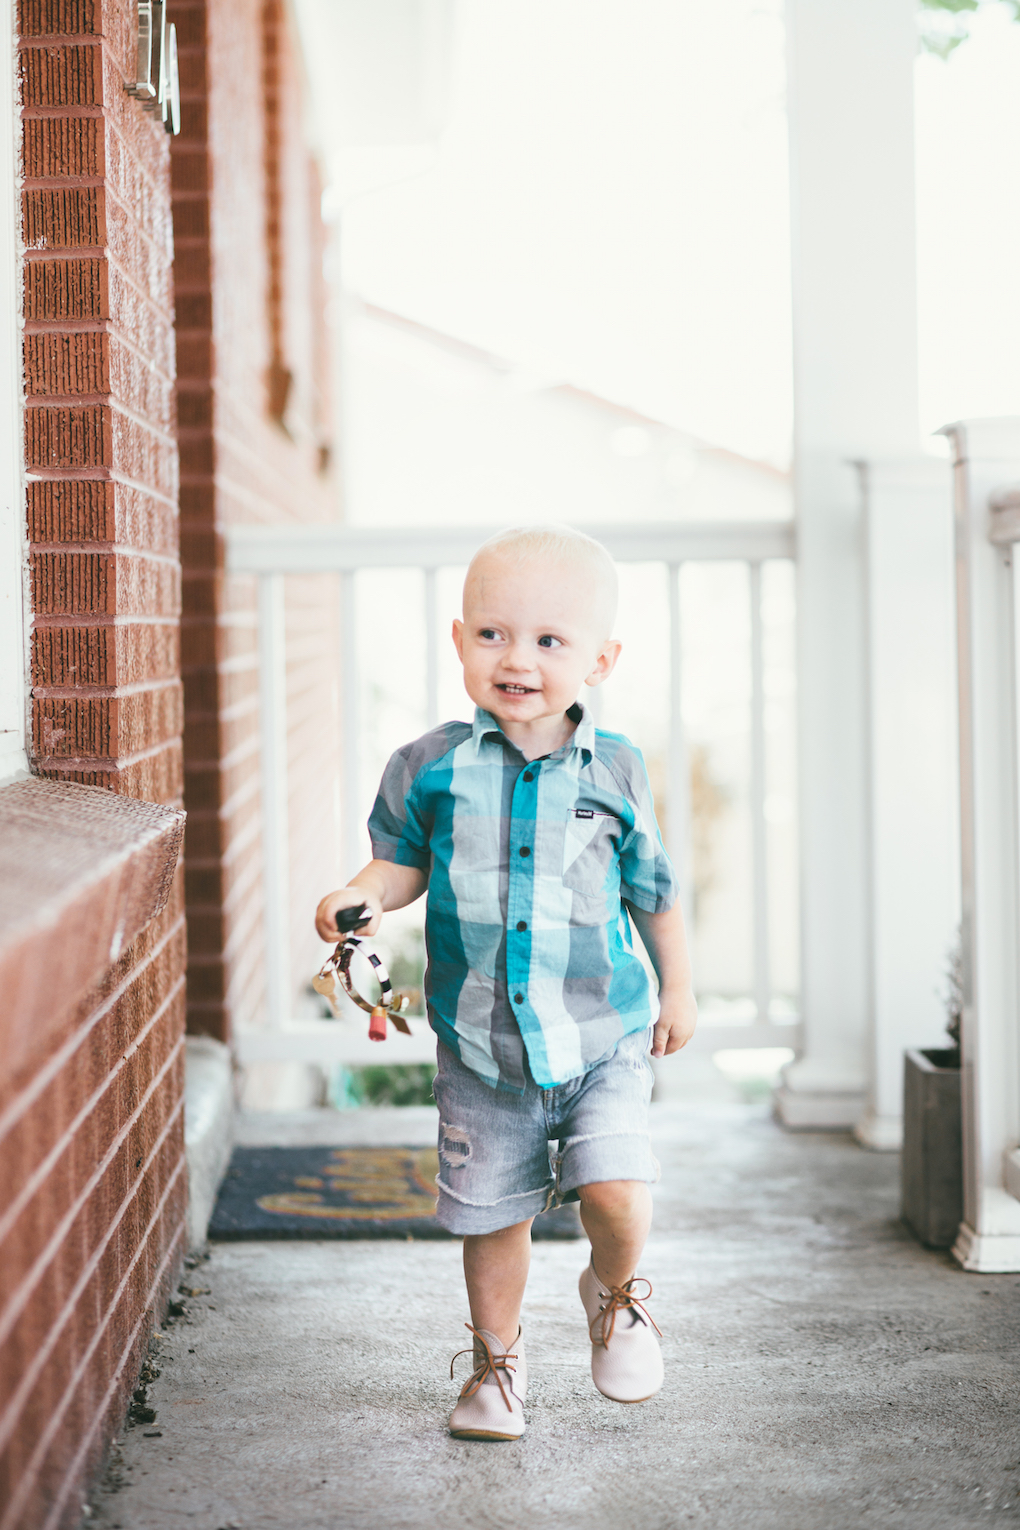 blonde little boy playing on the cement with keys wearing a checked turquoise button up shirt, cut off shorts, and mon petite shoes